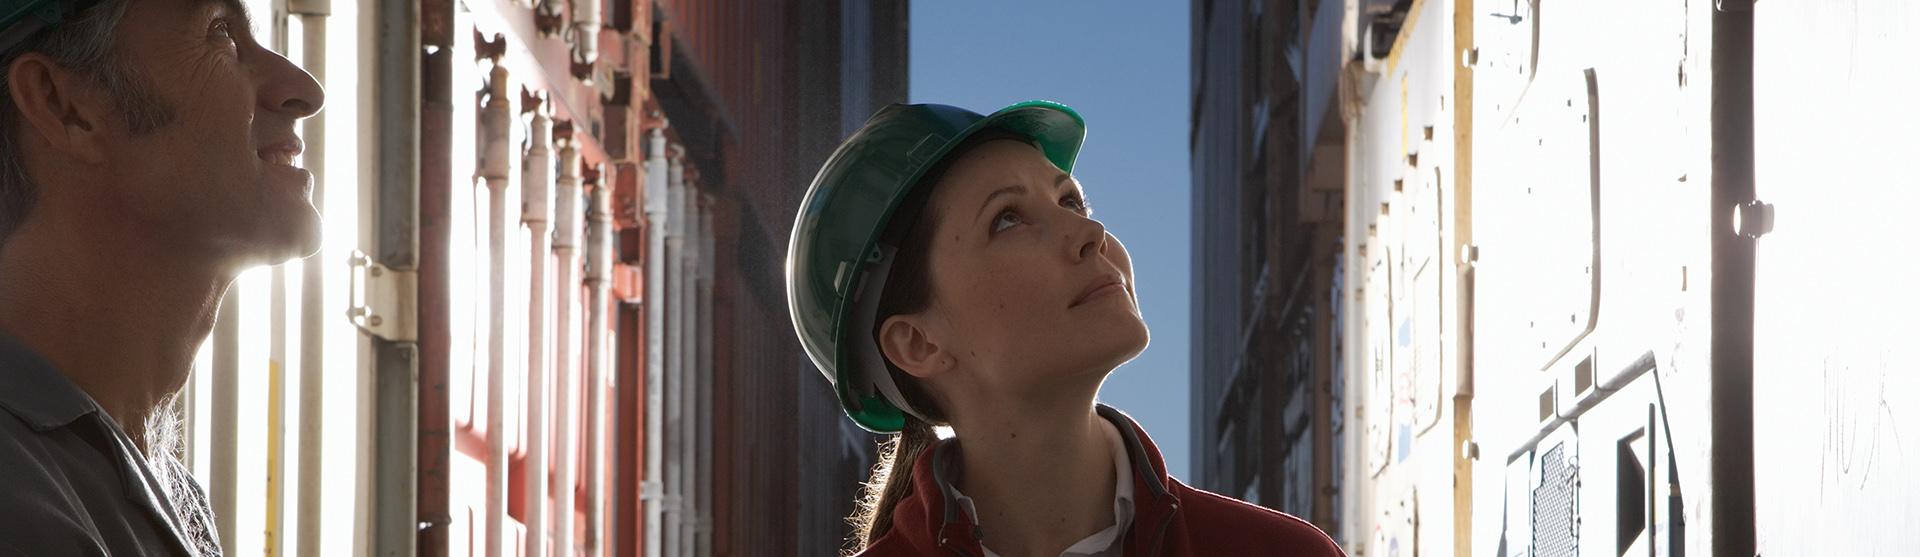 Man and woman standing between cargo containers, wearing hard hats